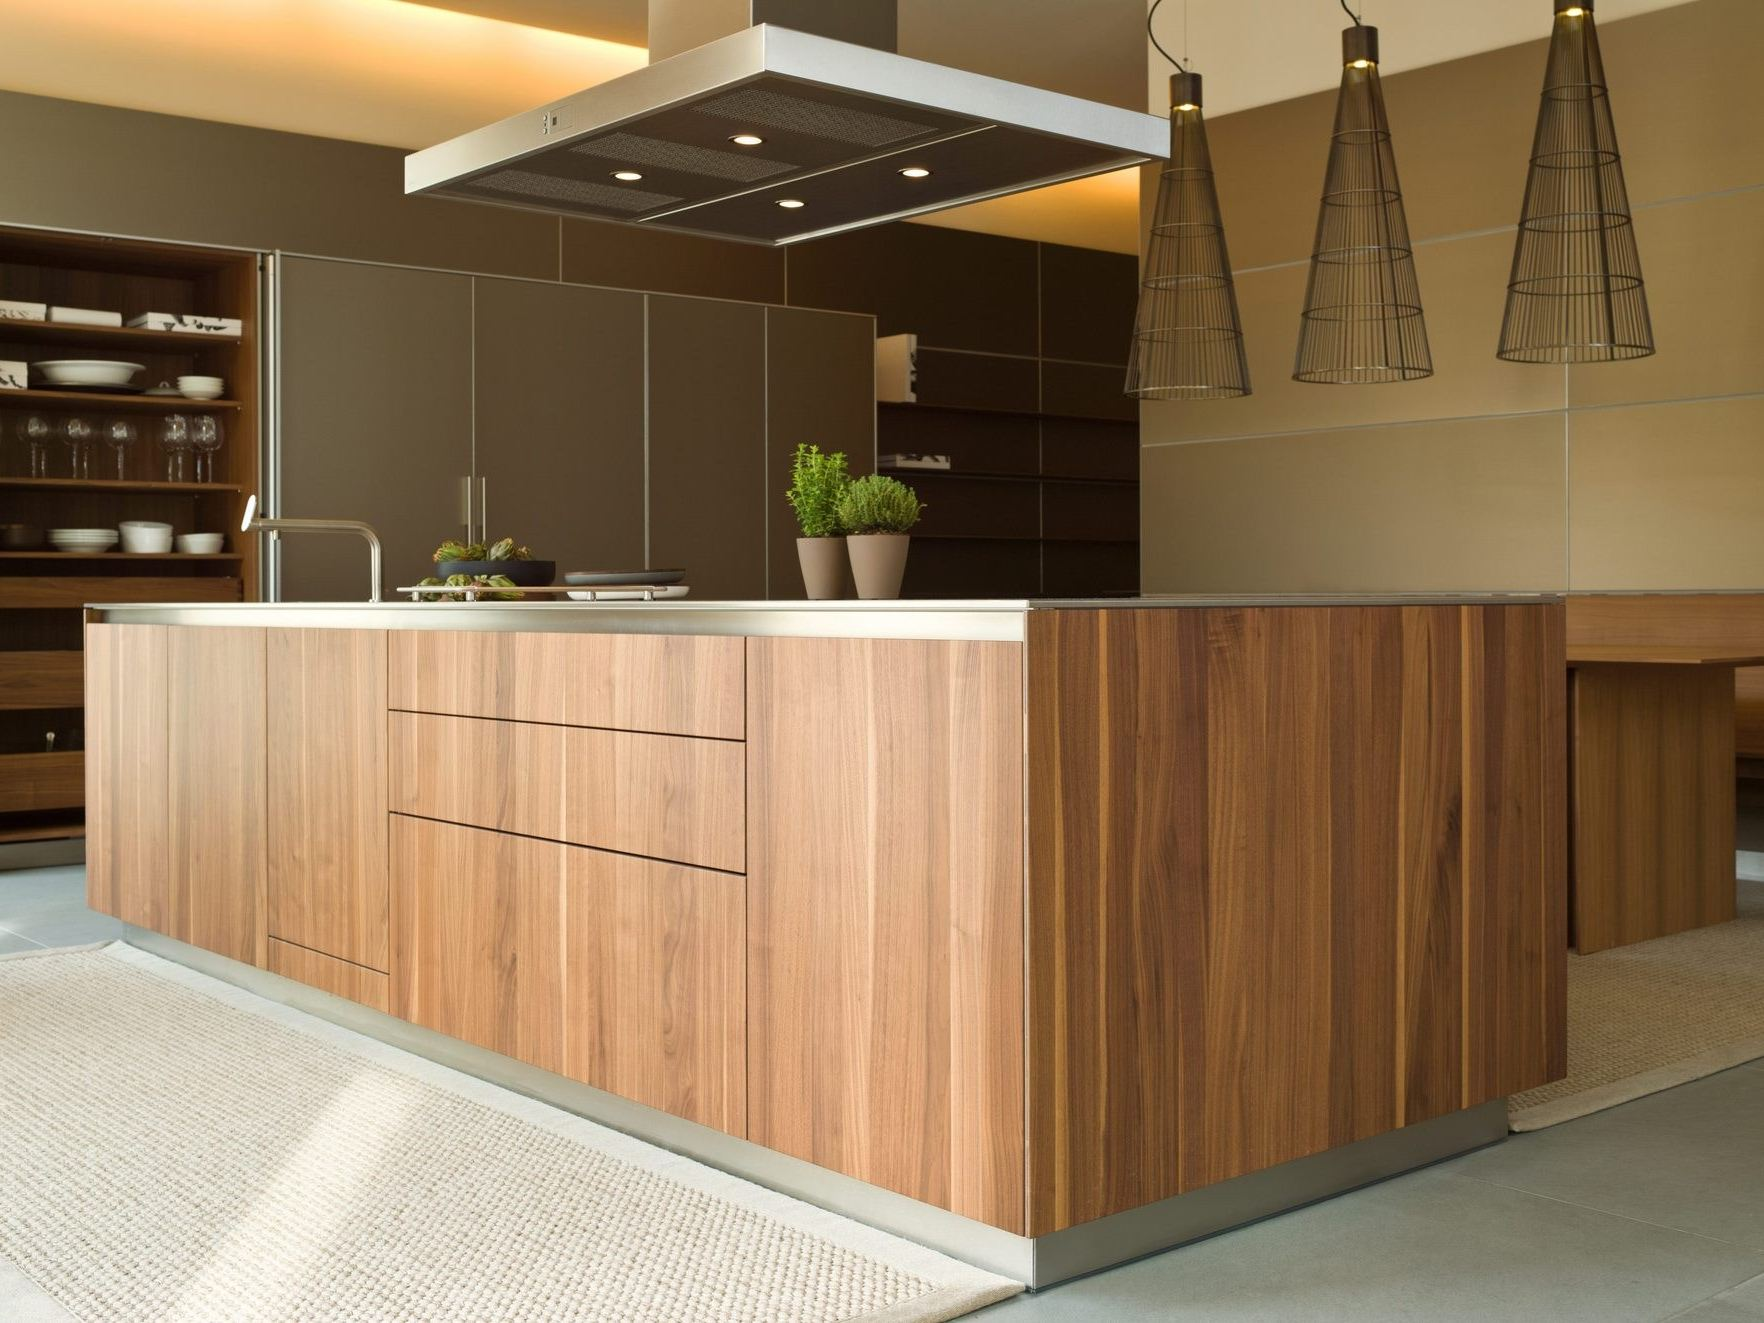 B3 Wooden kitchen by Bulthaup